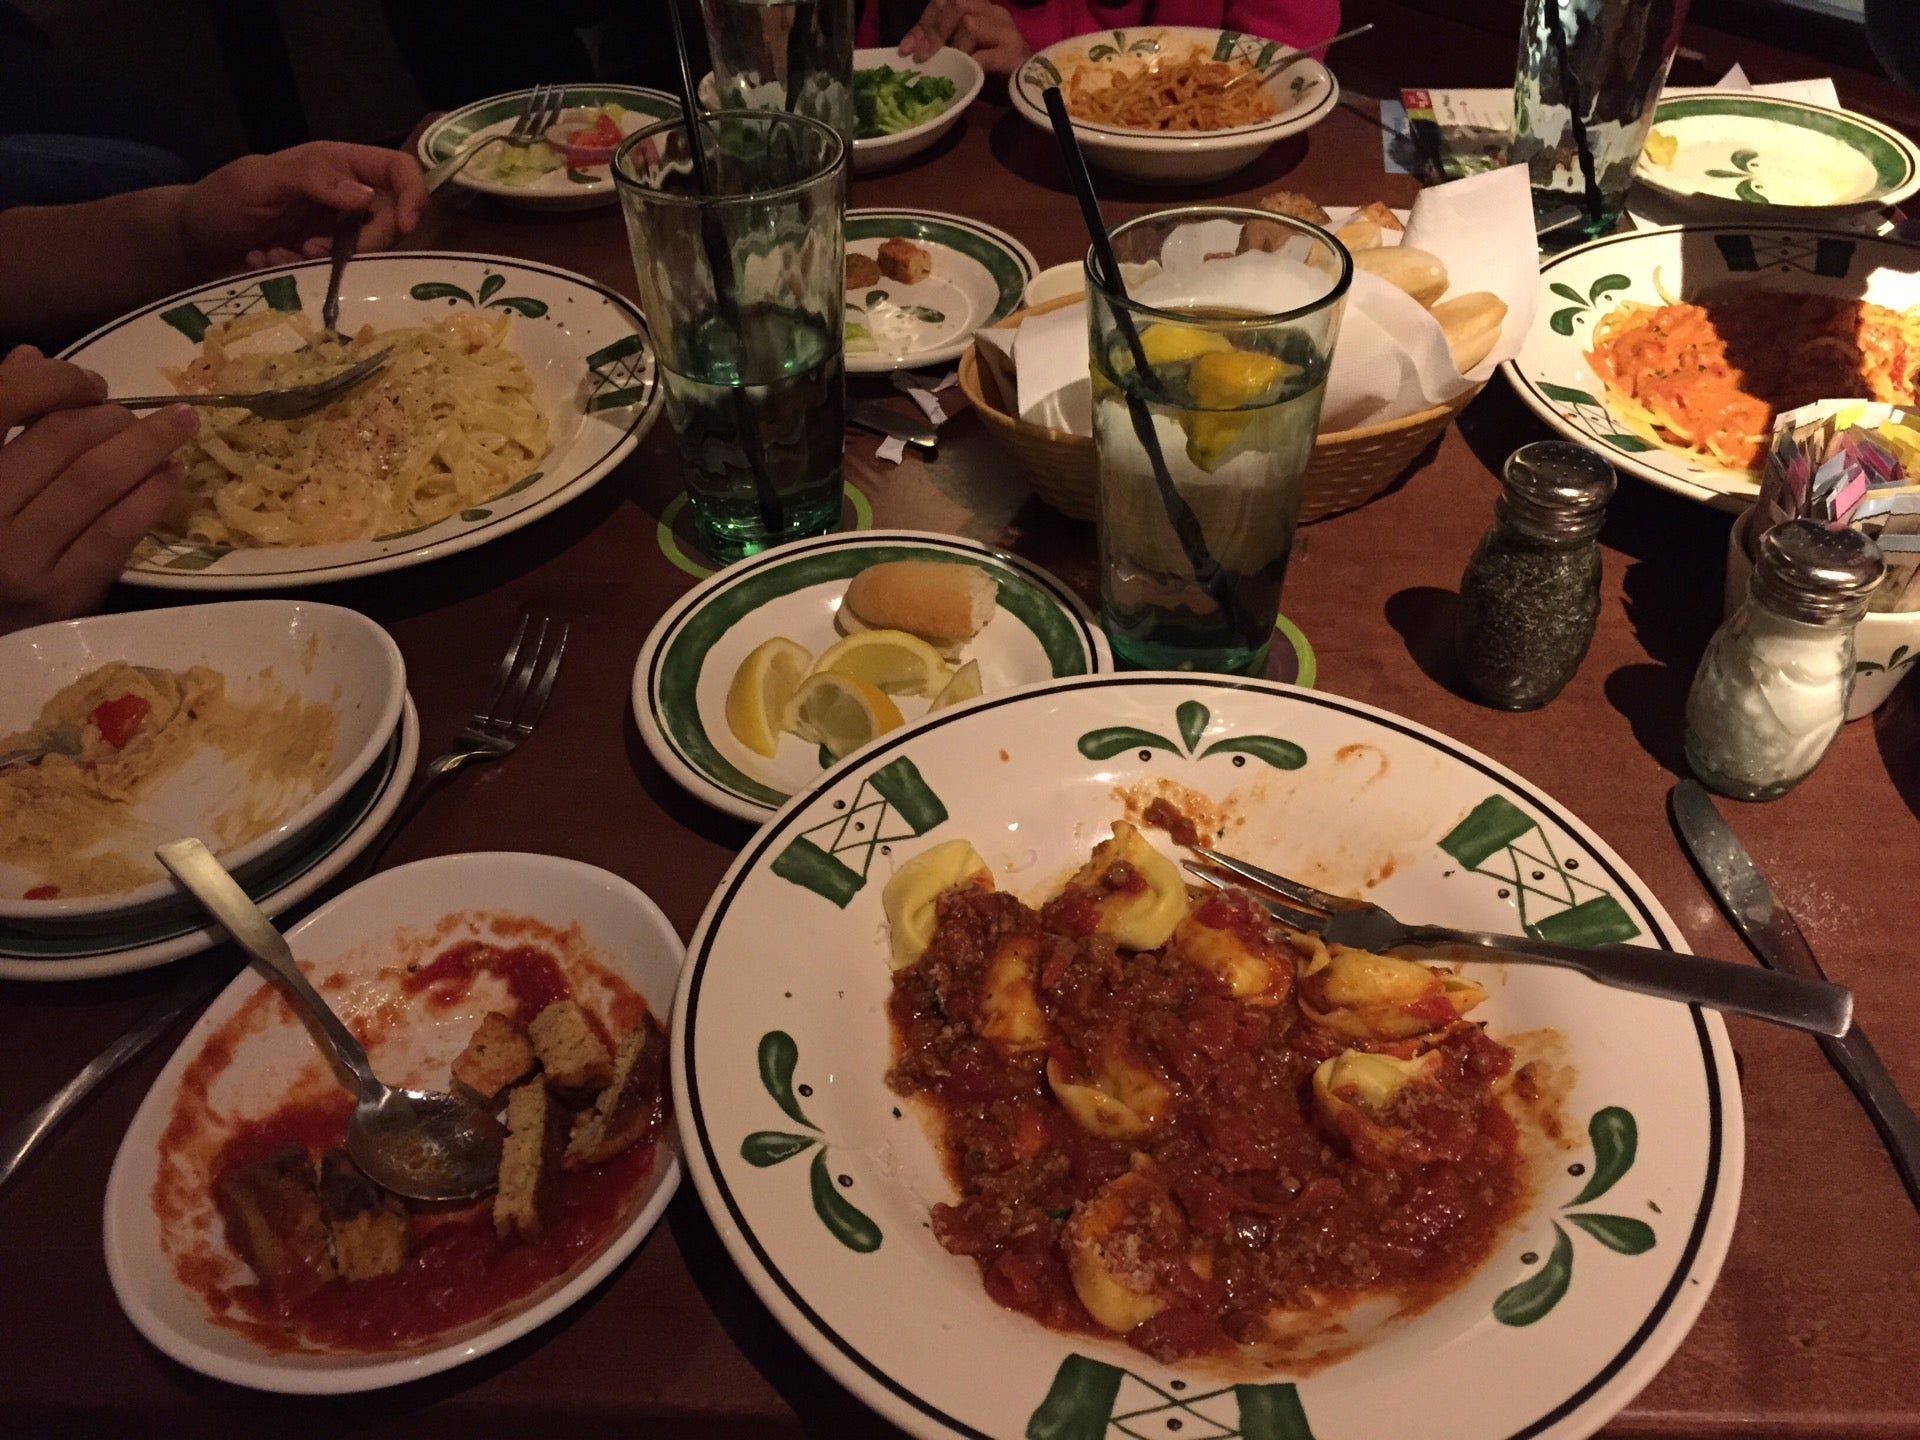 OLIVE GARDEN ITALIAN RESTAURANT,bar,dine in,italian,zagat-rated